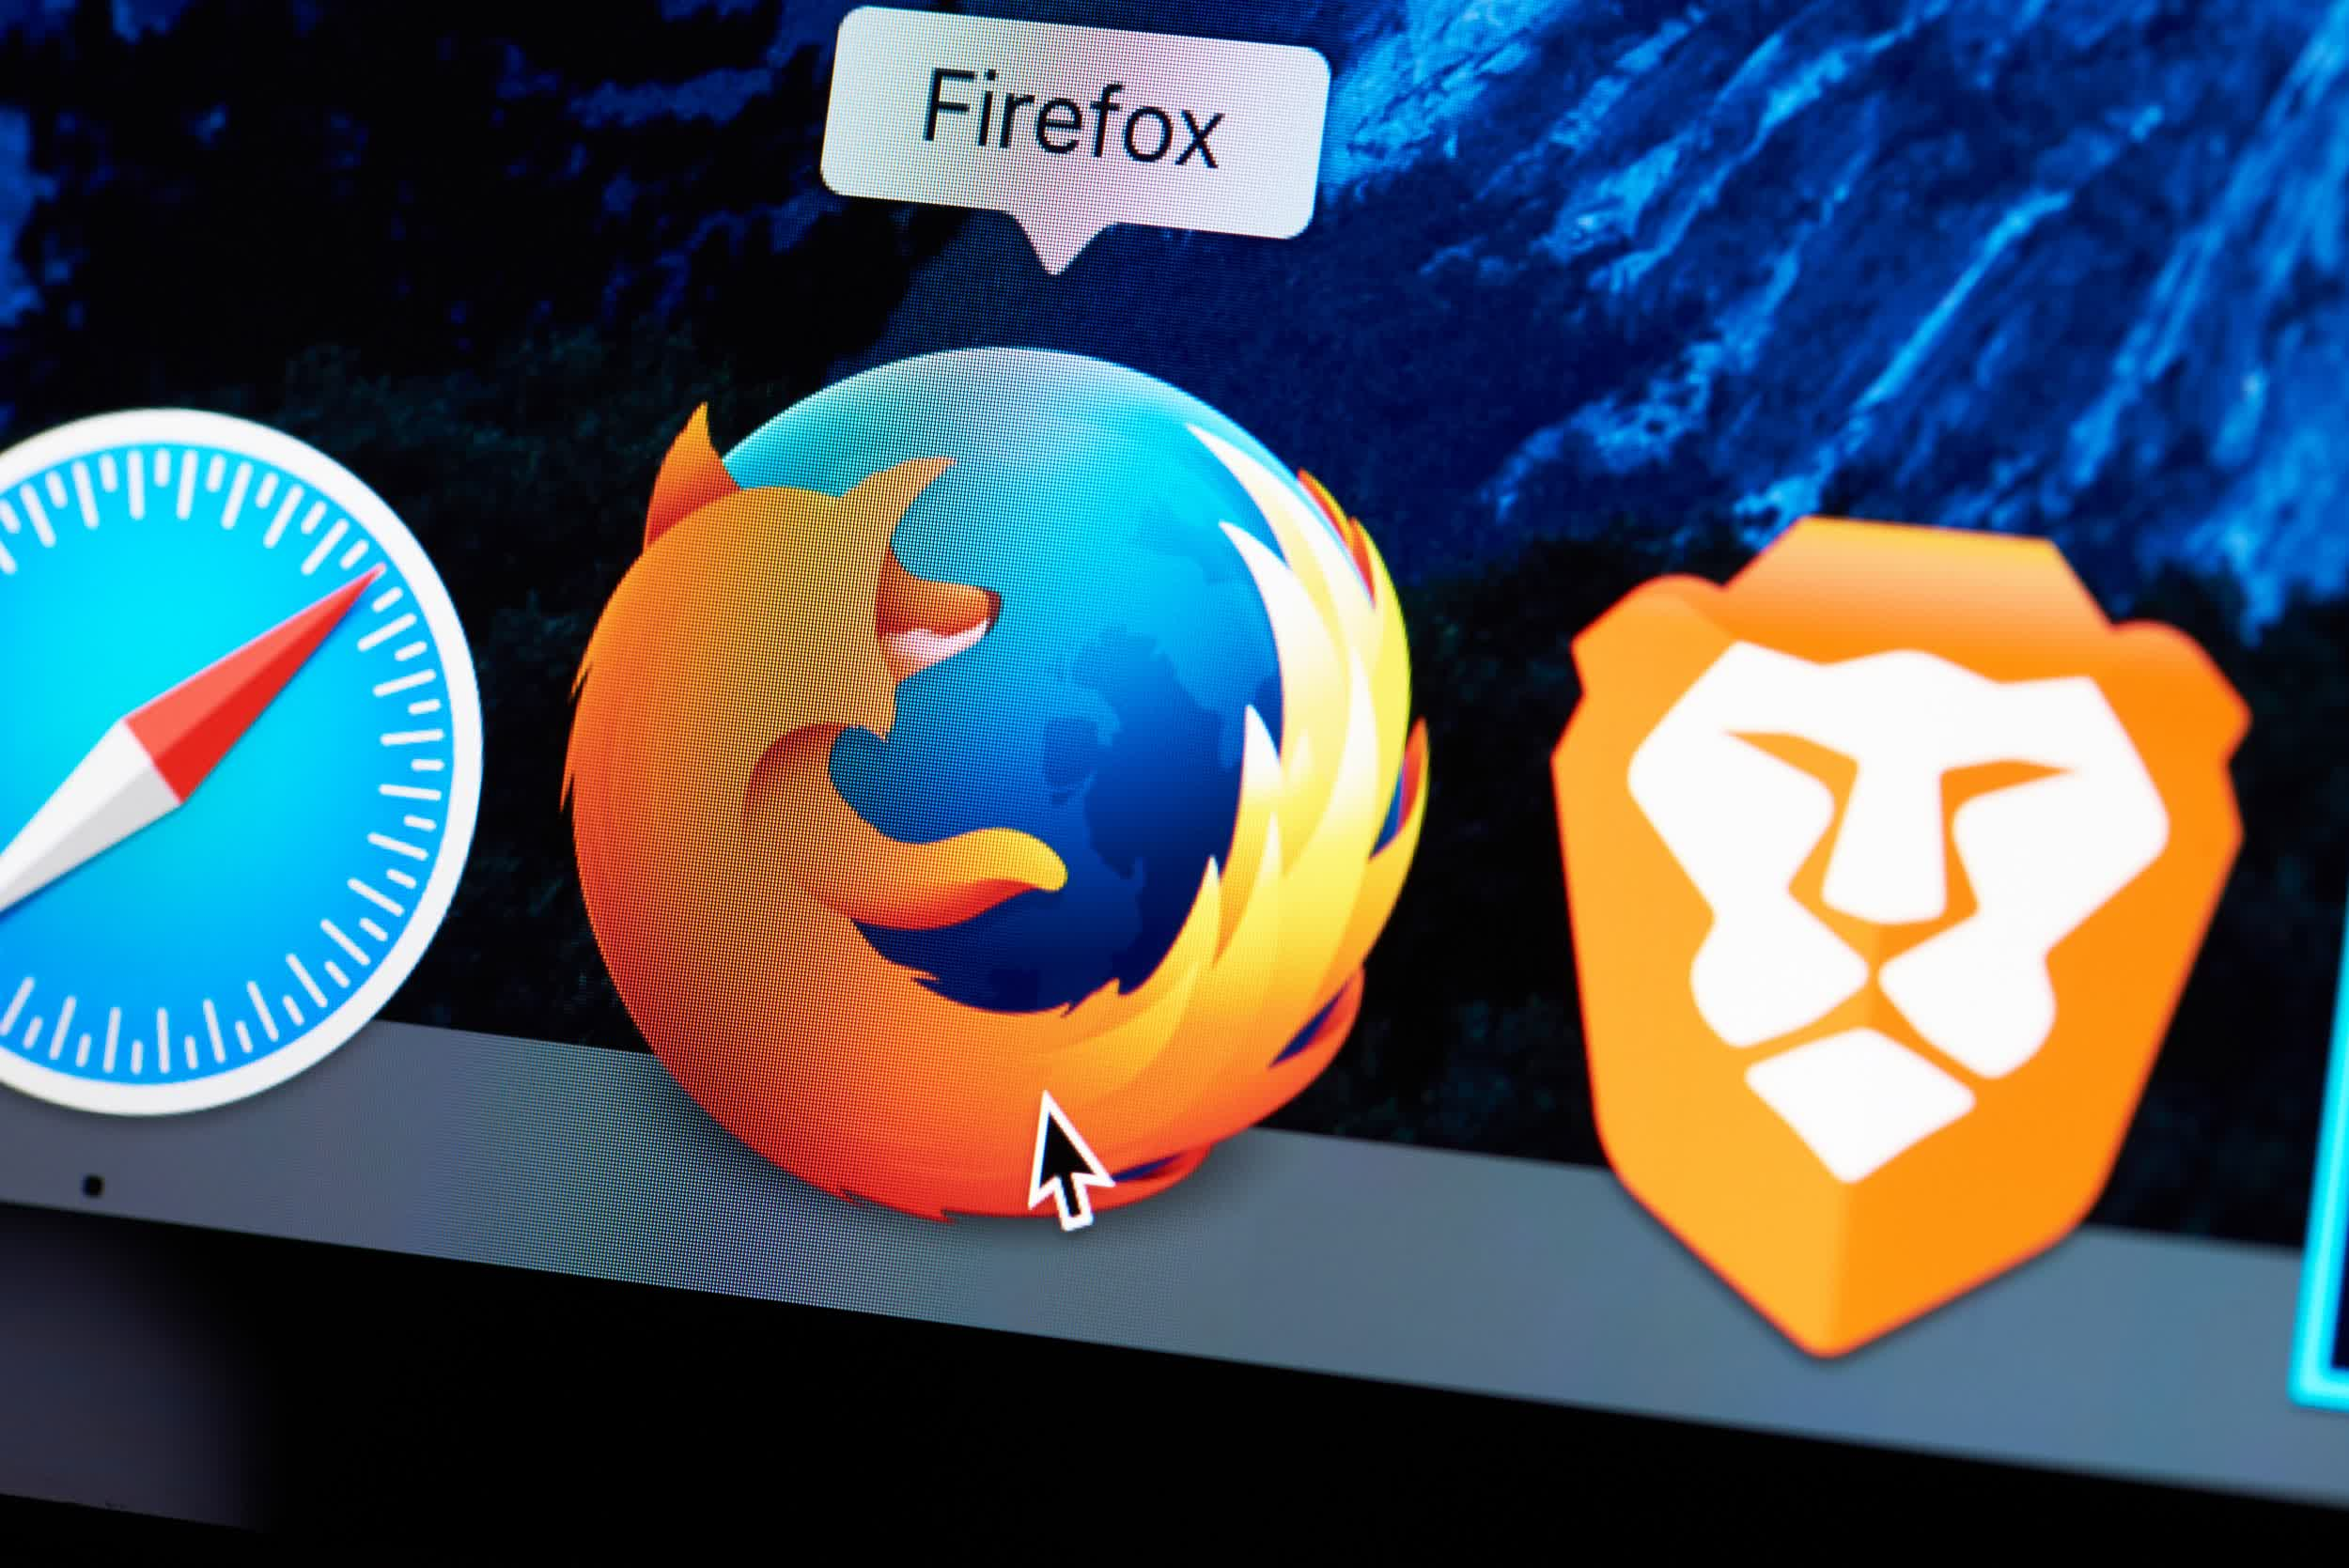 Firefox 82 is faster and offers a better picture-in-picture experience